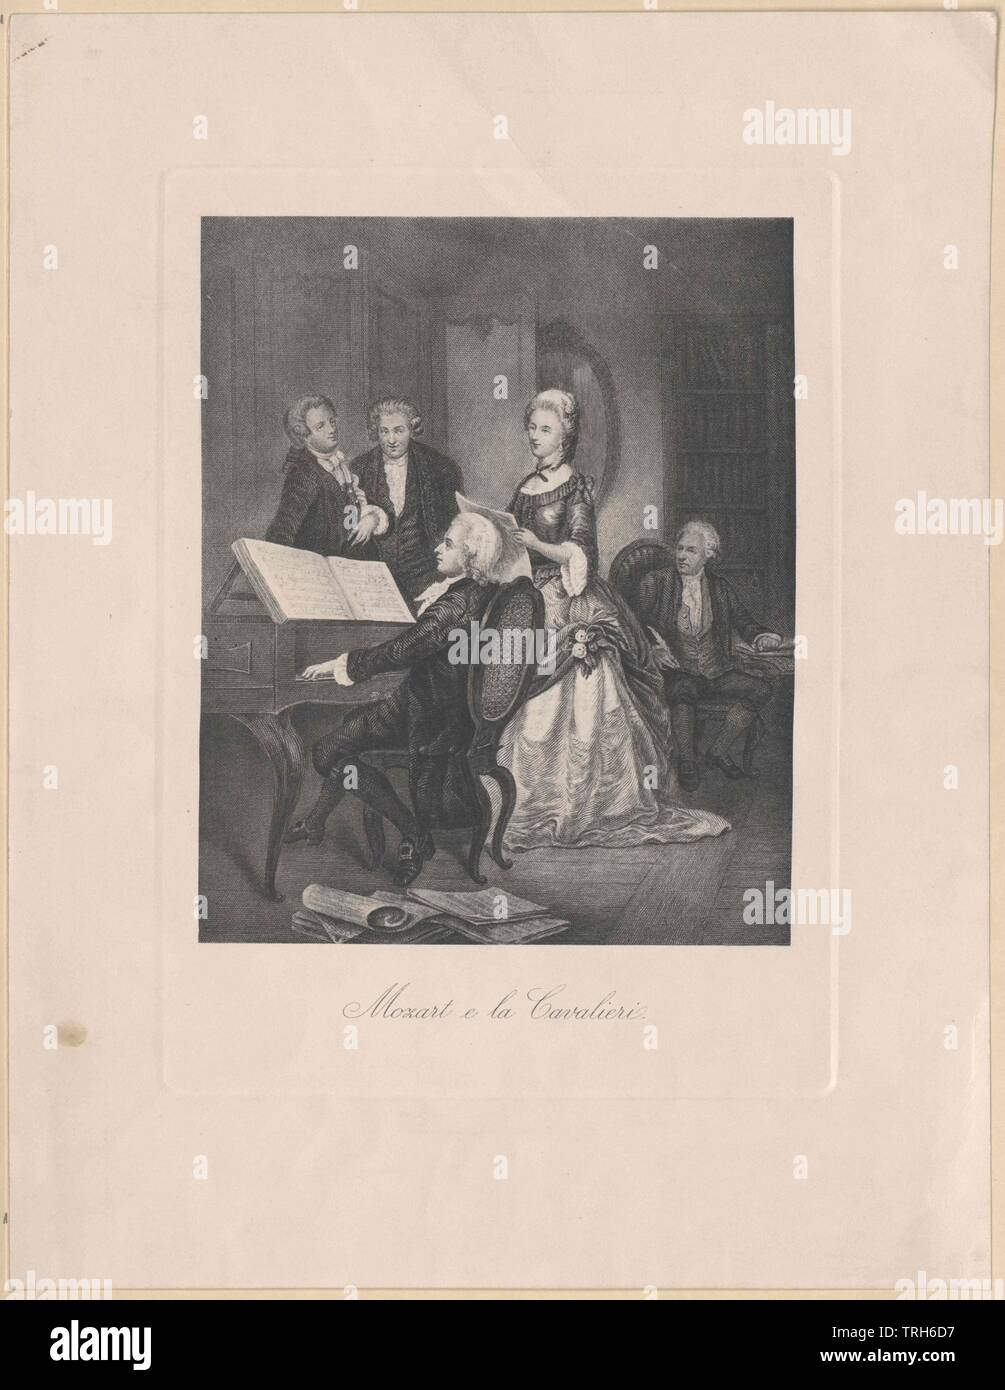 Mozart at piano,group picture, composer, composers, culture, cultures, artist, artists, musicians, personality, celebrities, musician, further, other, Viennese classicism, full-length, full length, 18th century, people, man, men, male, manly, piano, pianos, Additional-Rights-Clearance-Info-Not-Available - Stock Image